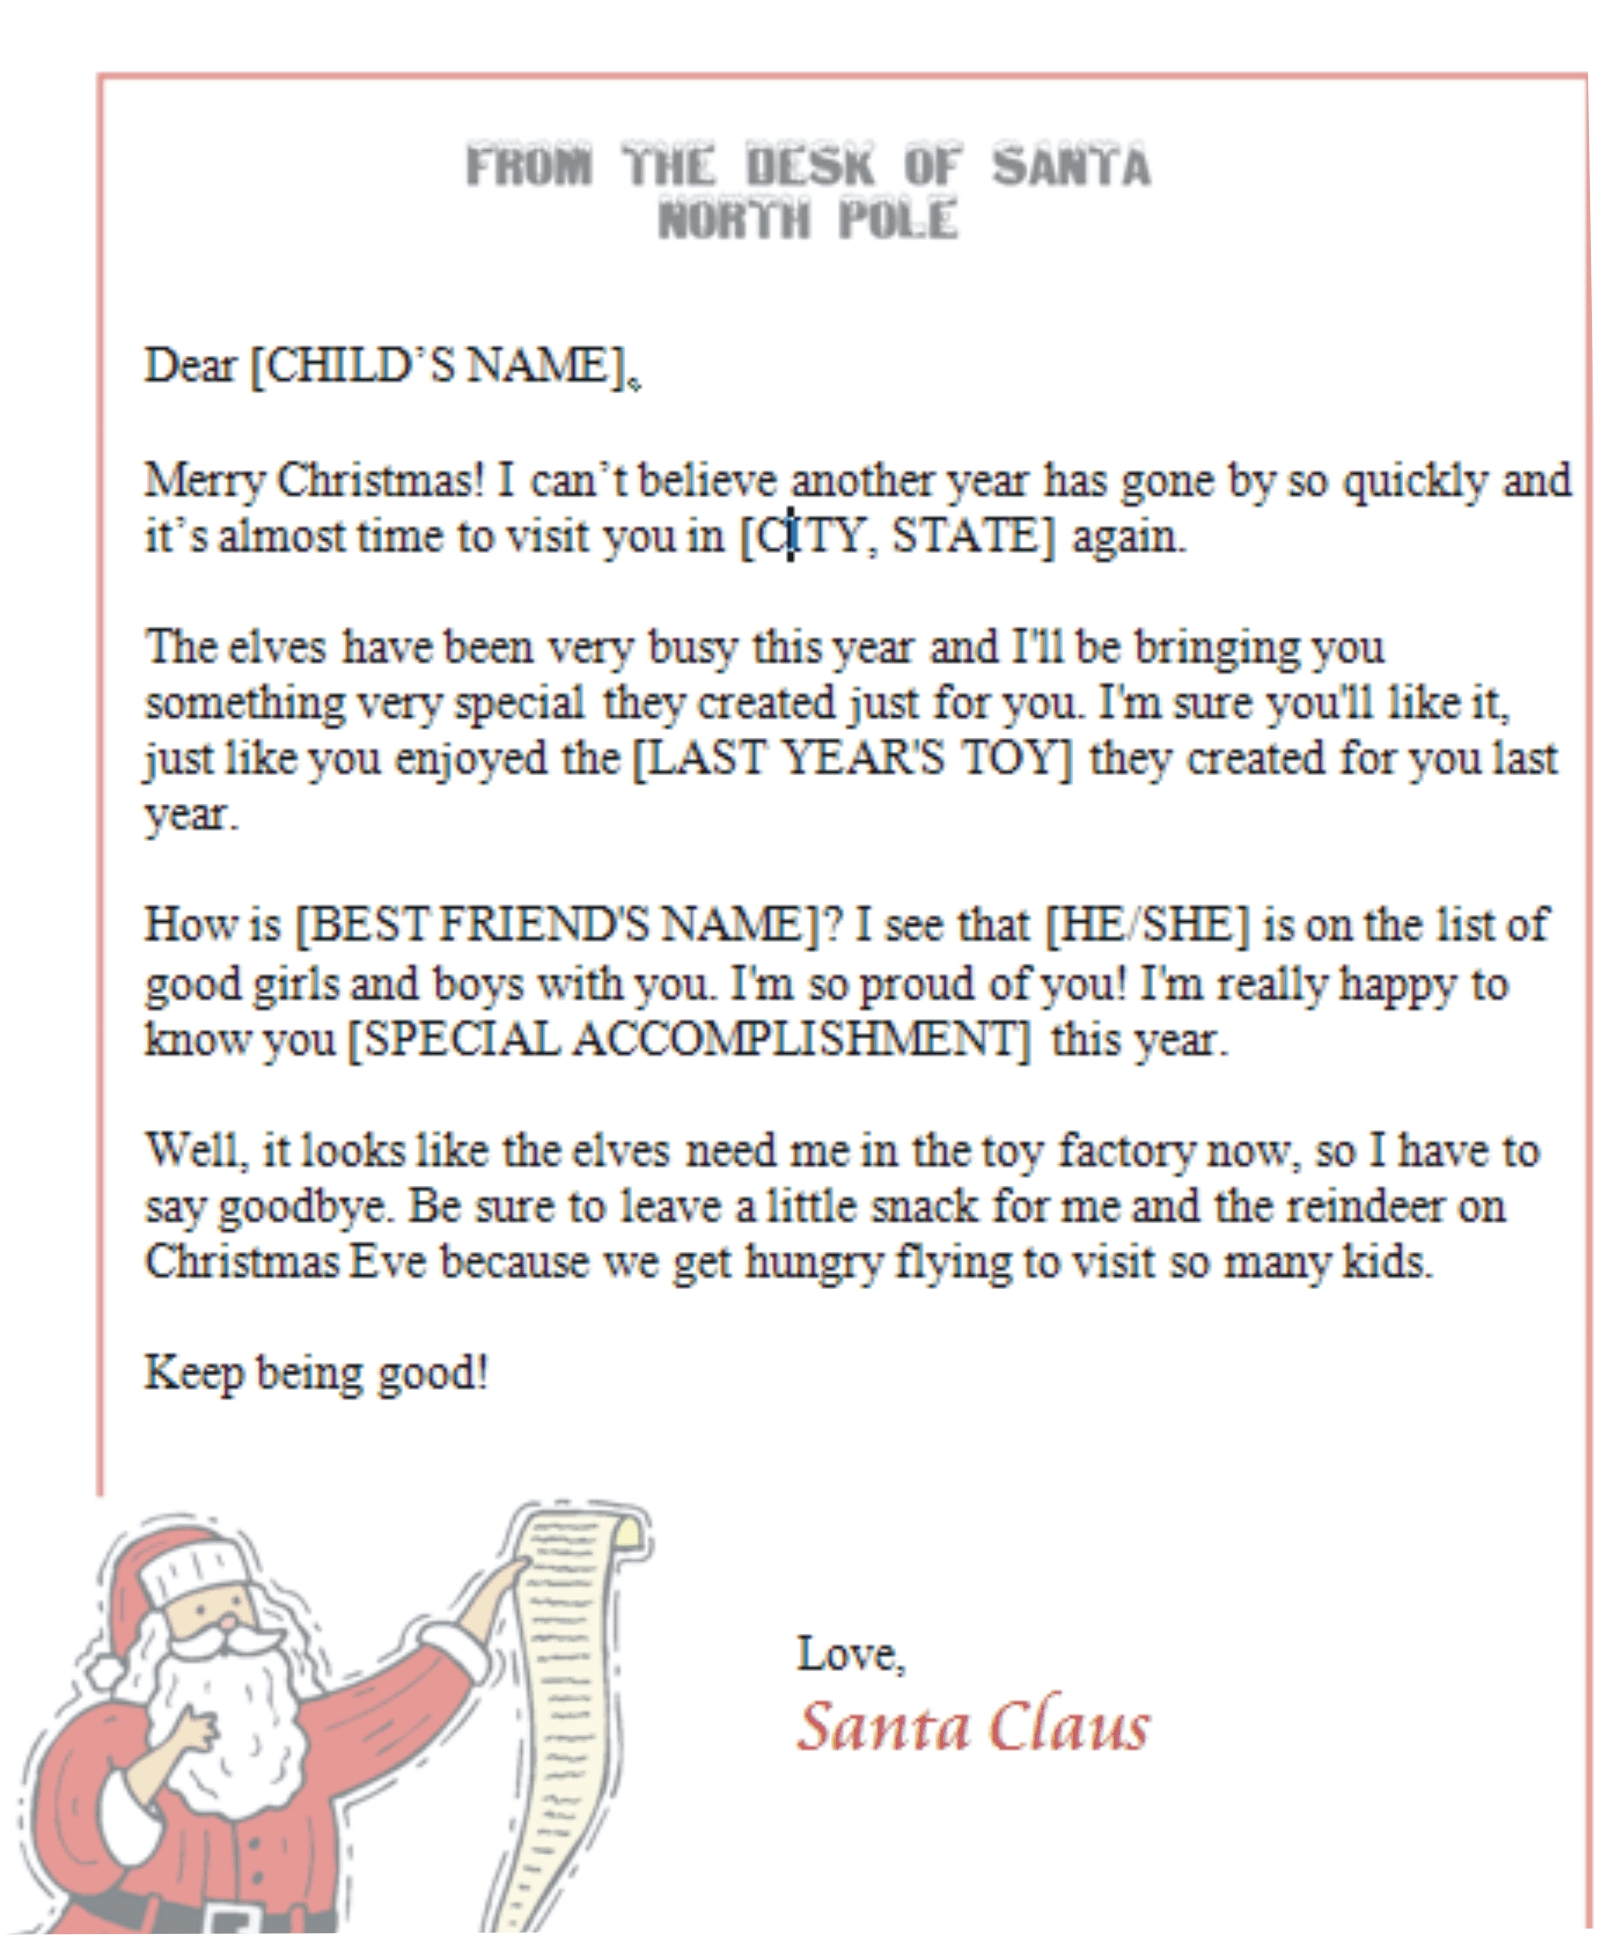 image regarding Free Printable Letter From Santa Template Word named No cost Printable Letter Against Santa Template Phrase Choice